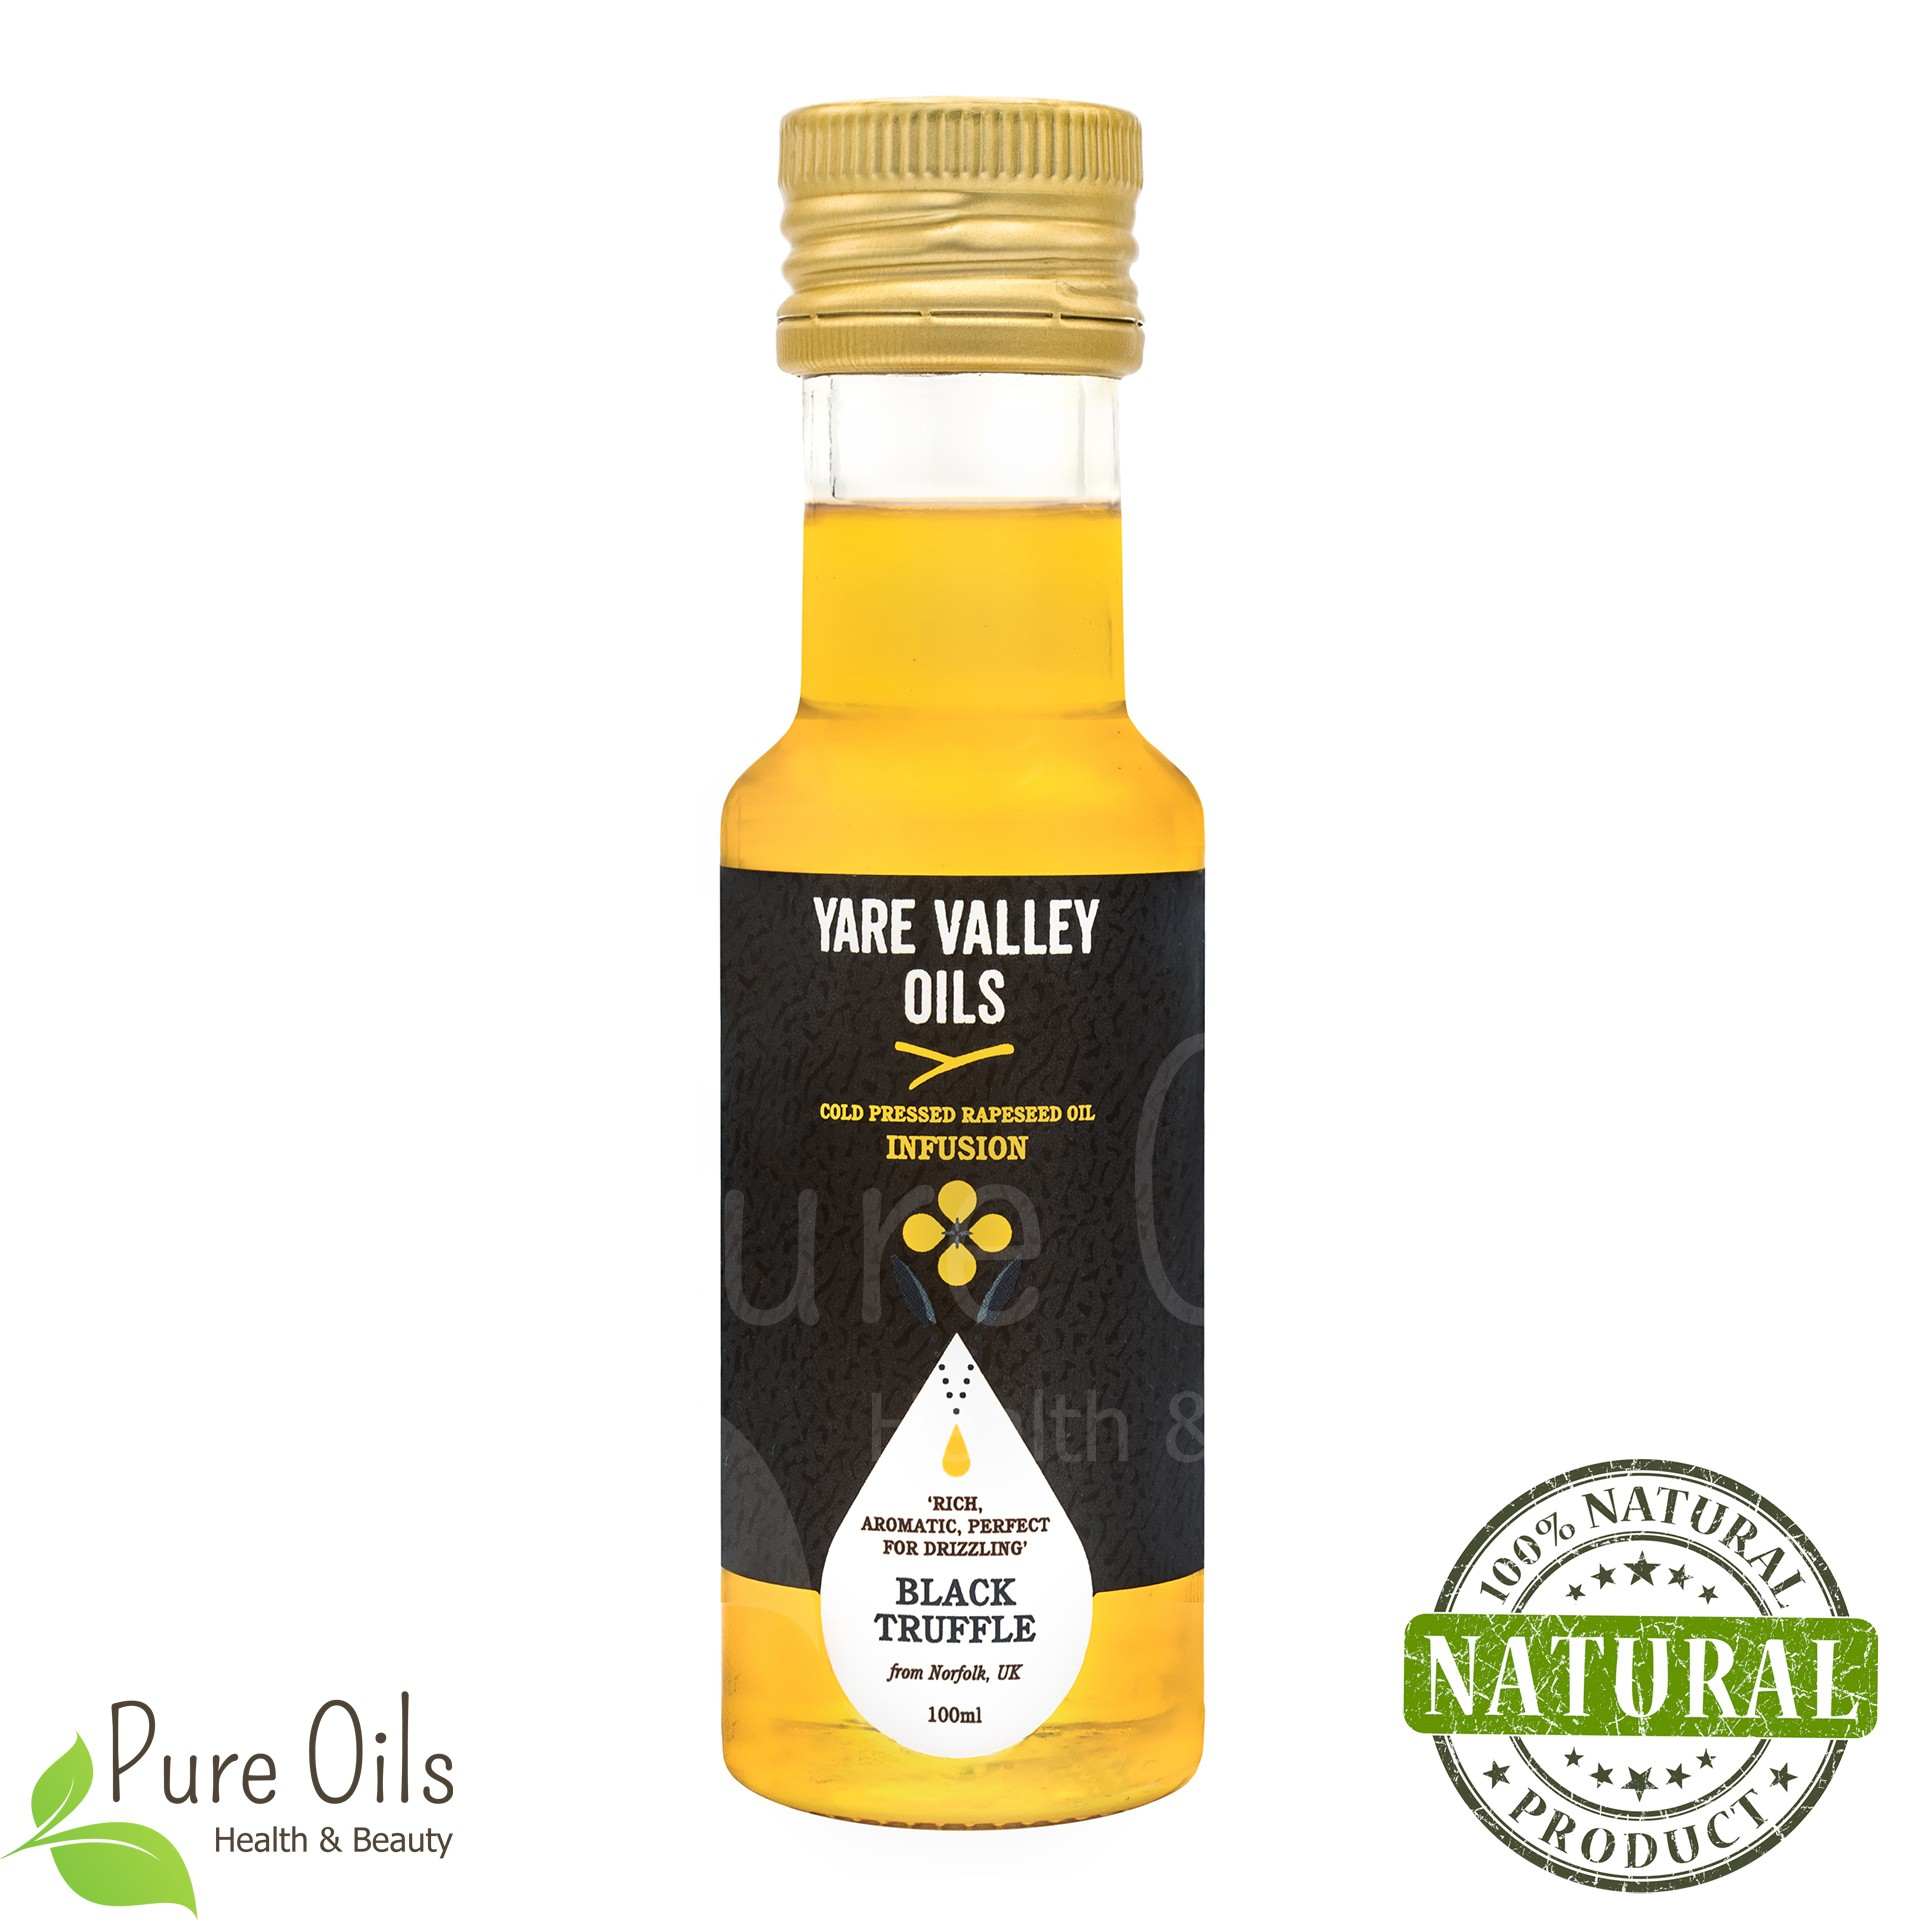 Black Truffle Rapeseed Oil, Cold Pressed, Yare Valley